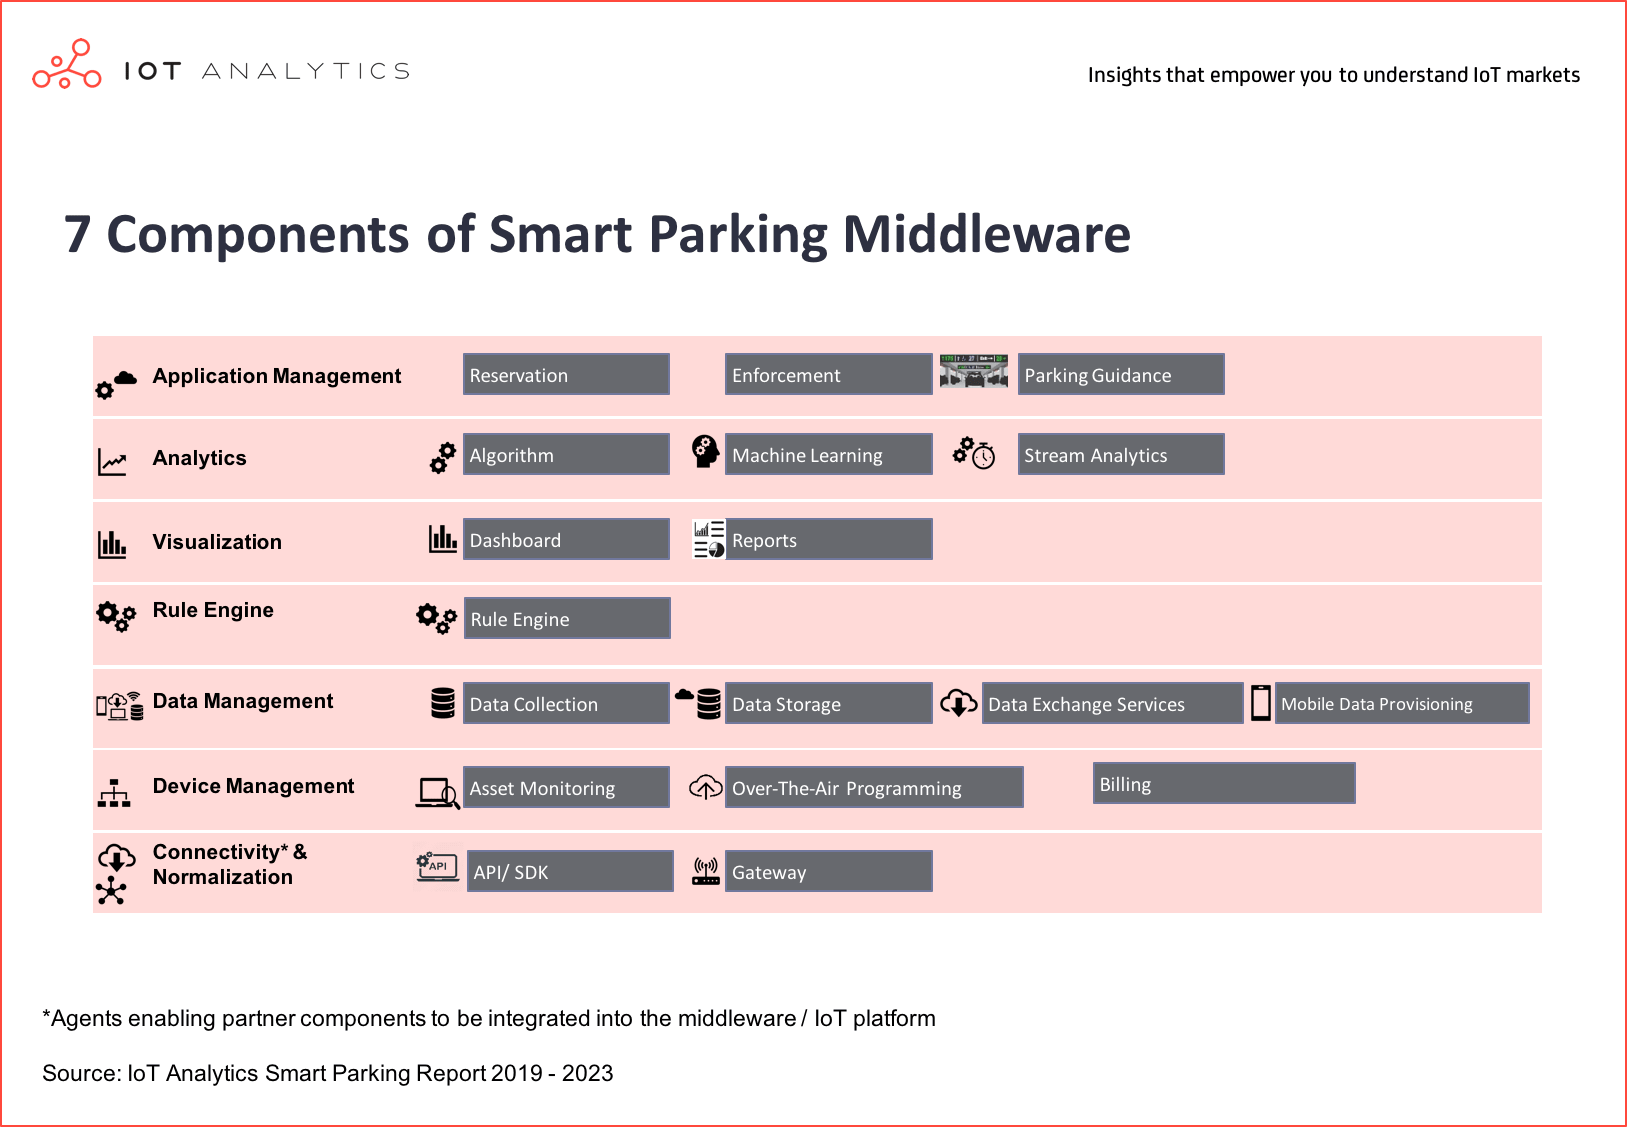 Smart CIty IoT Projects - Components of smart parking middleware  - Smart CIty IoT Projects Components of smart parking middleware min - 5 Key Insights from 350+ Smart City IoT Projects